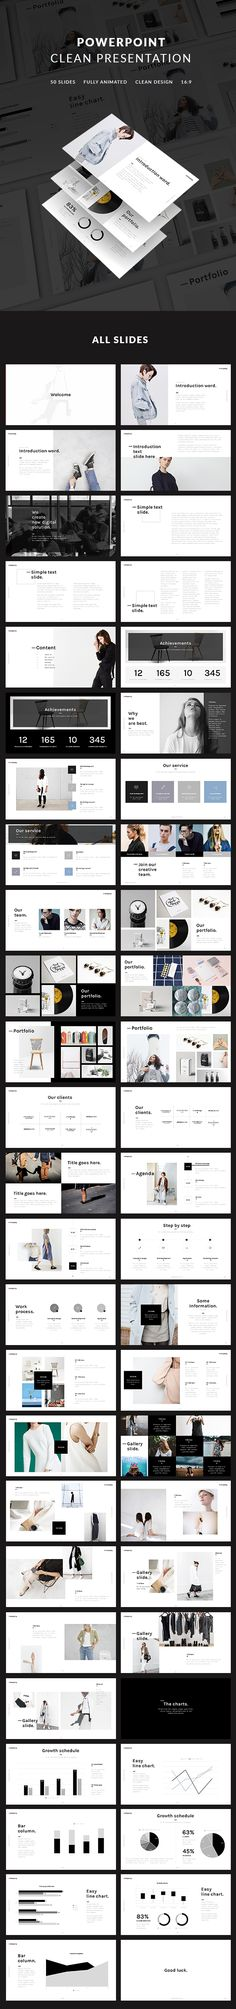 84 best free presentation templates images on pinterest in 2018 clean powerpoint presentation template download here httpsgraphicriver toneelgroepblik Image collections